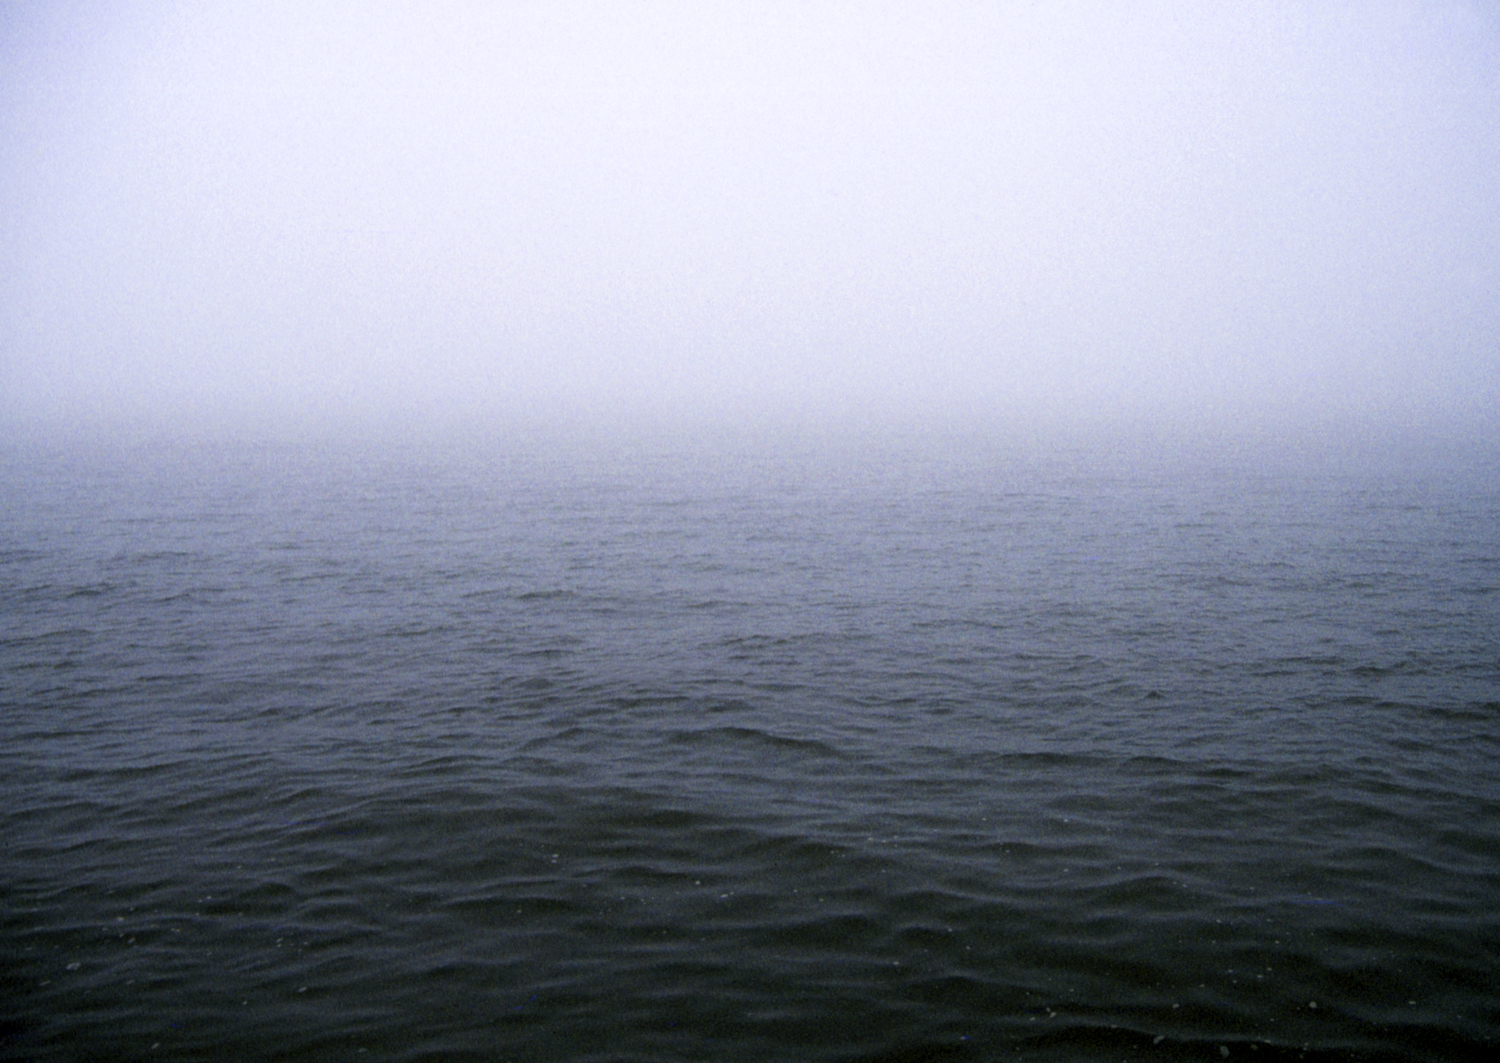 AT SEA IN A FOG